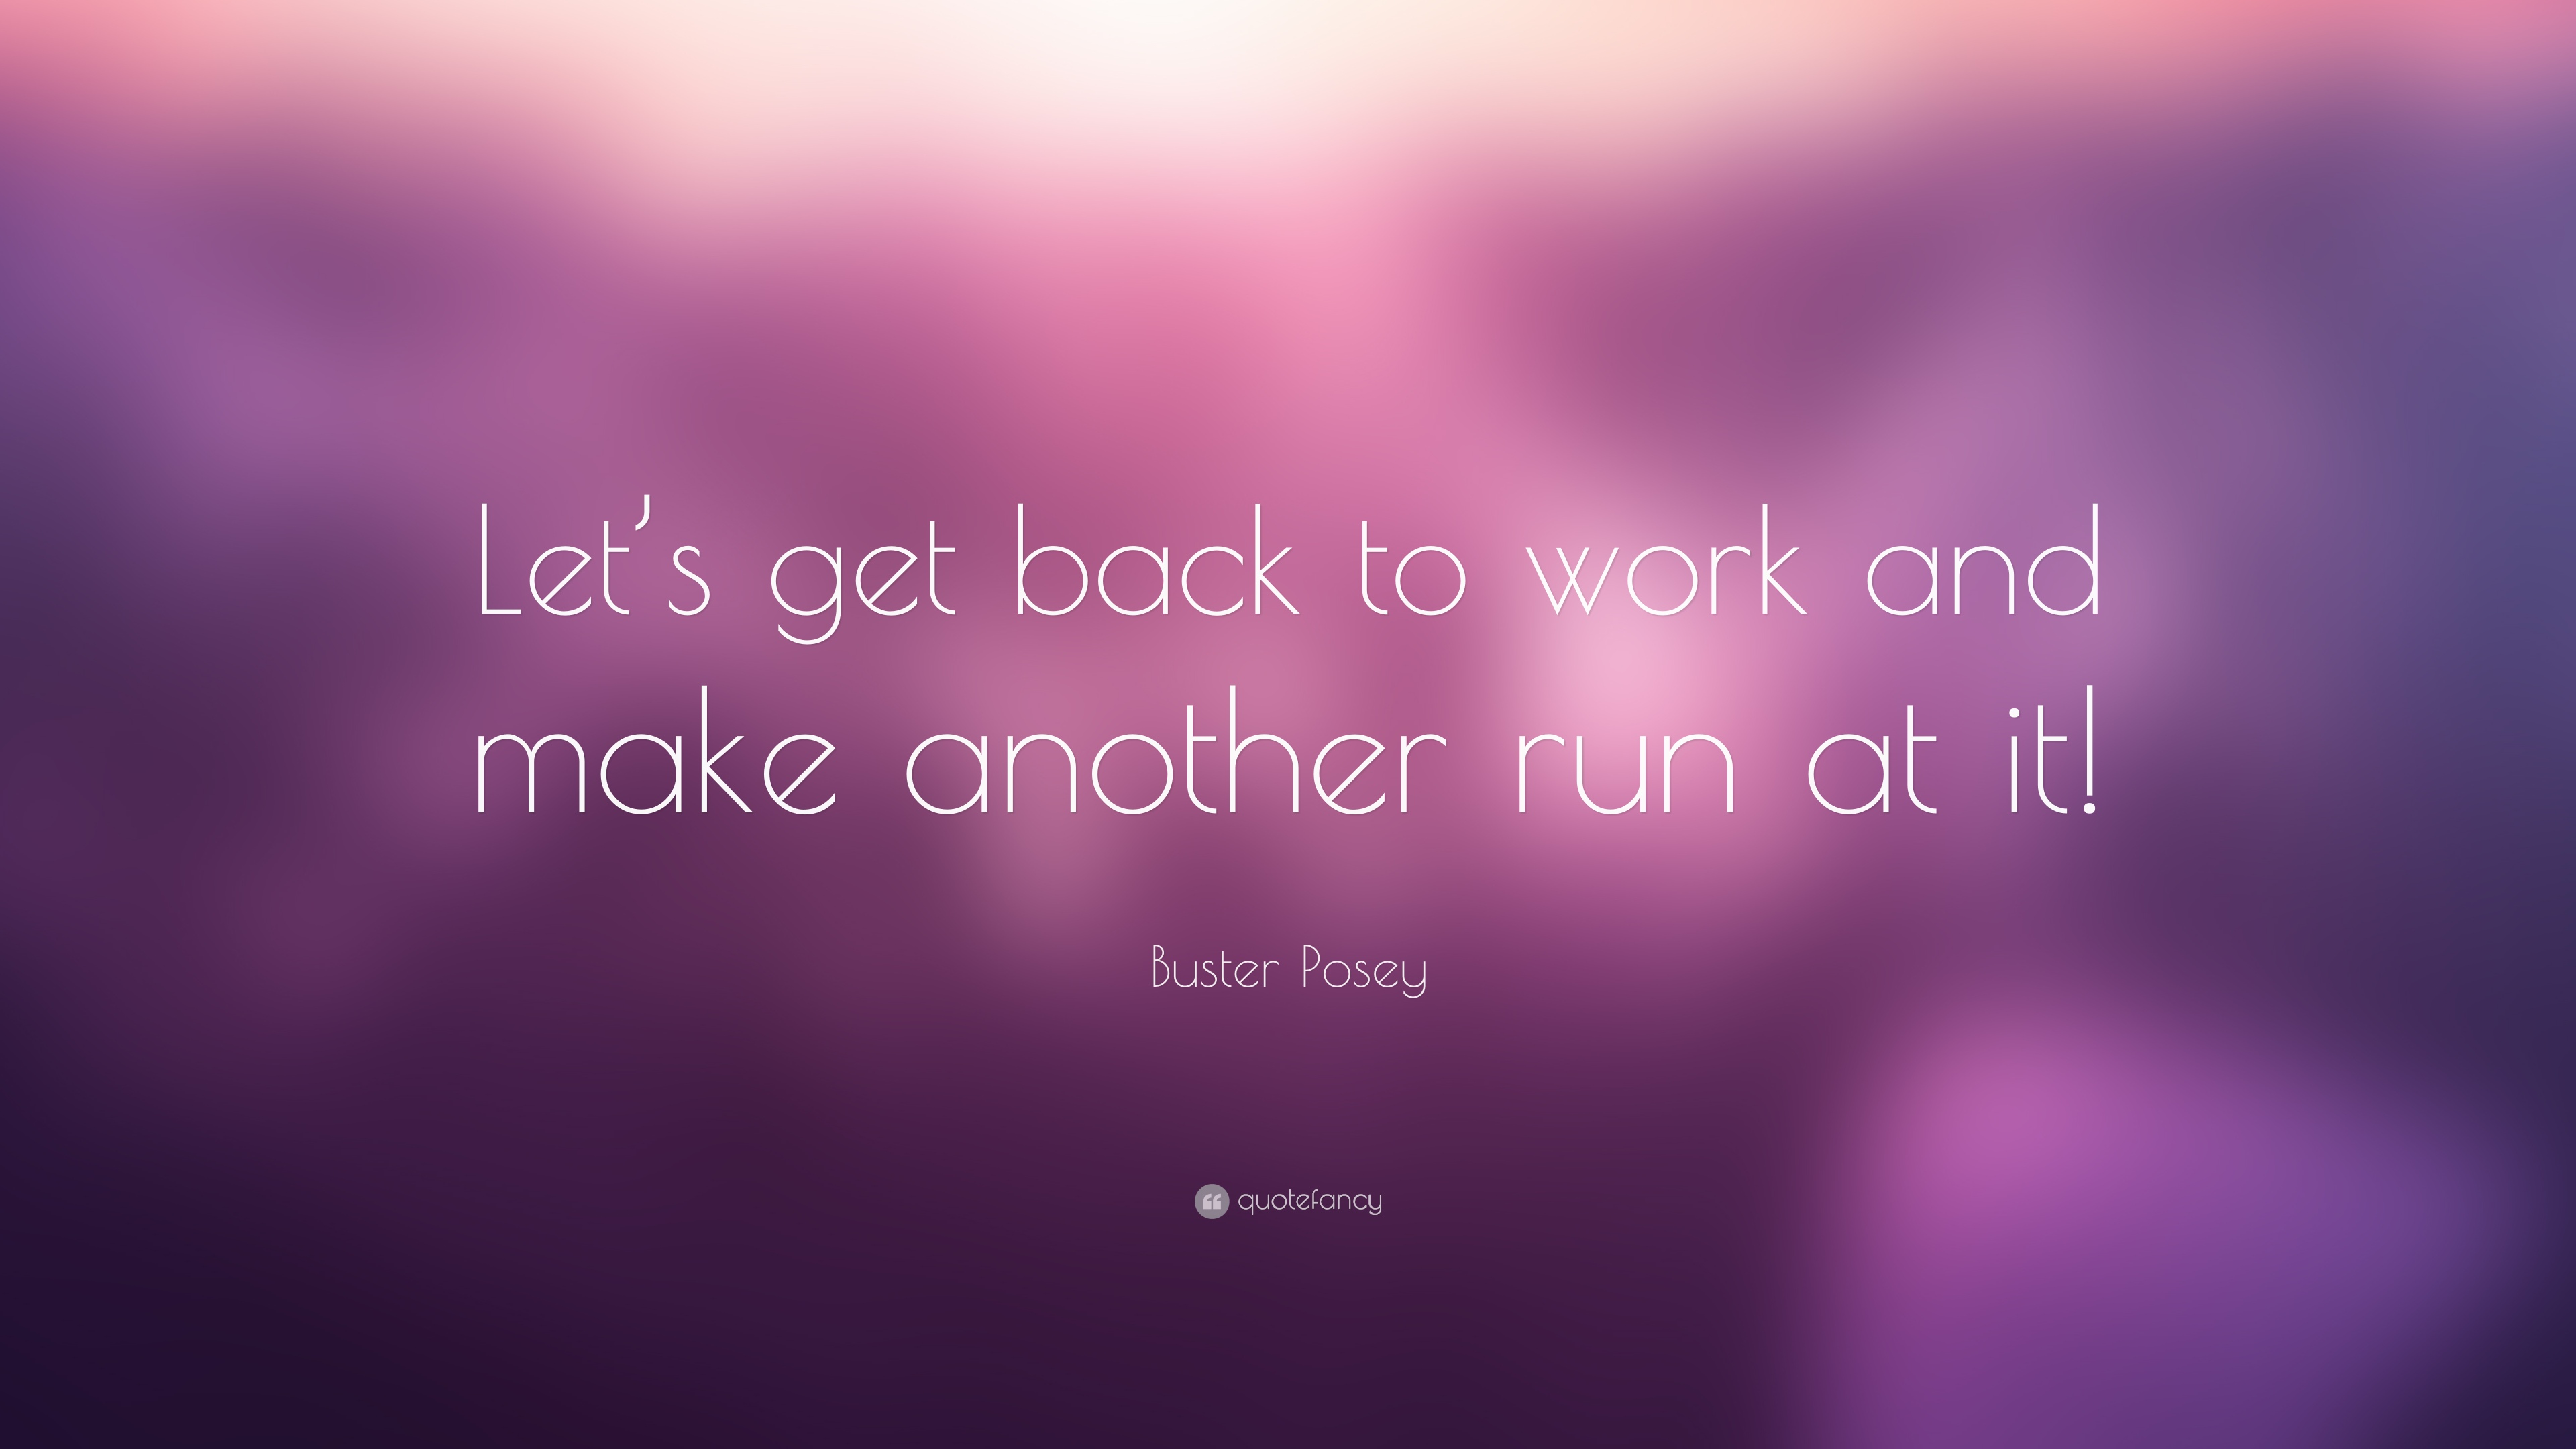 Back To Work : Buster posey quote: u201clets get back to work and make another run at